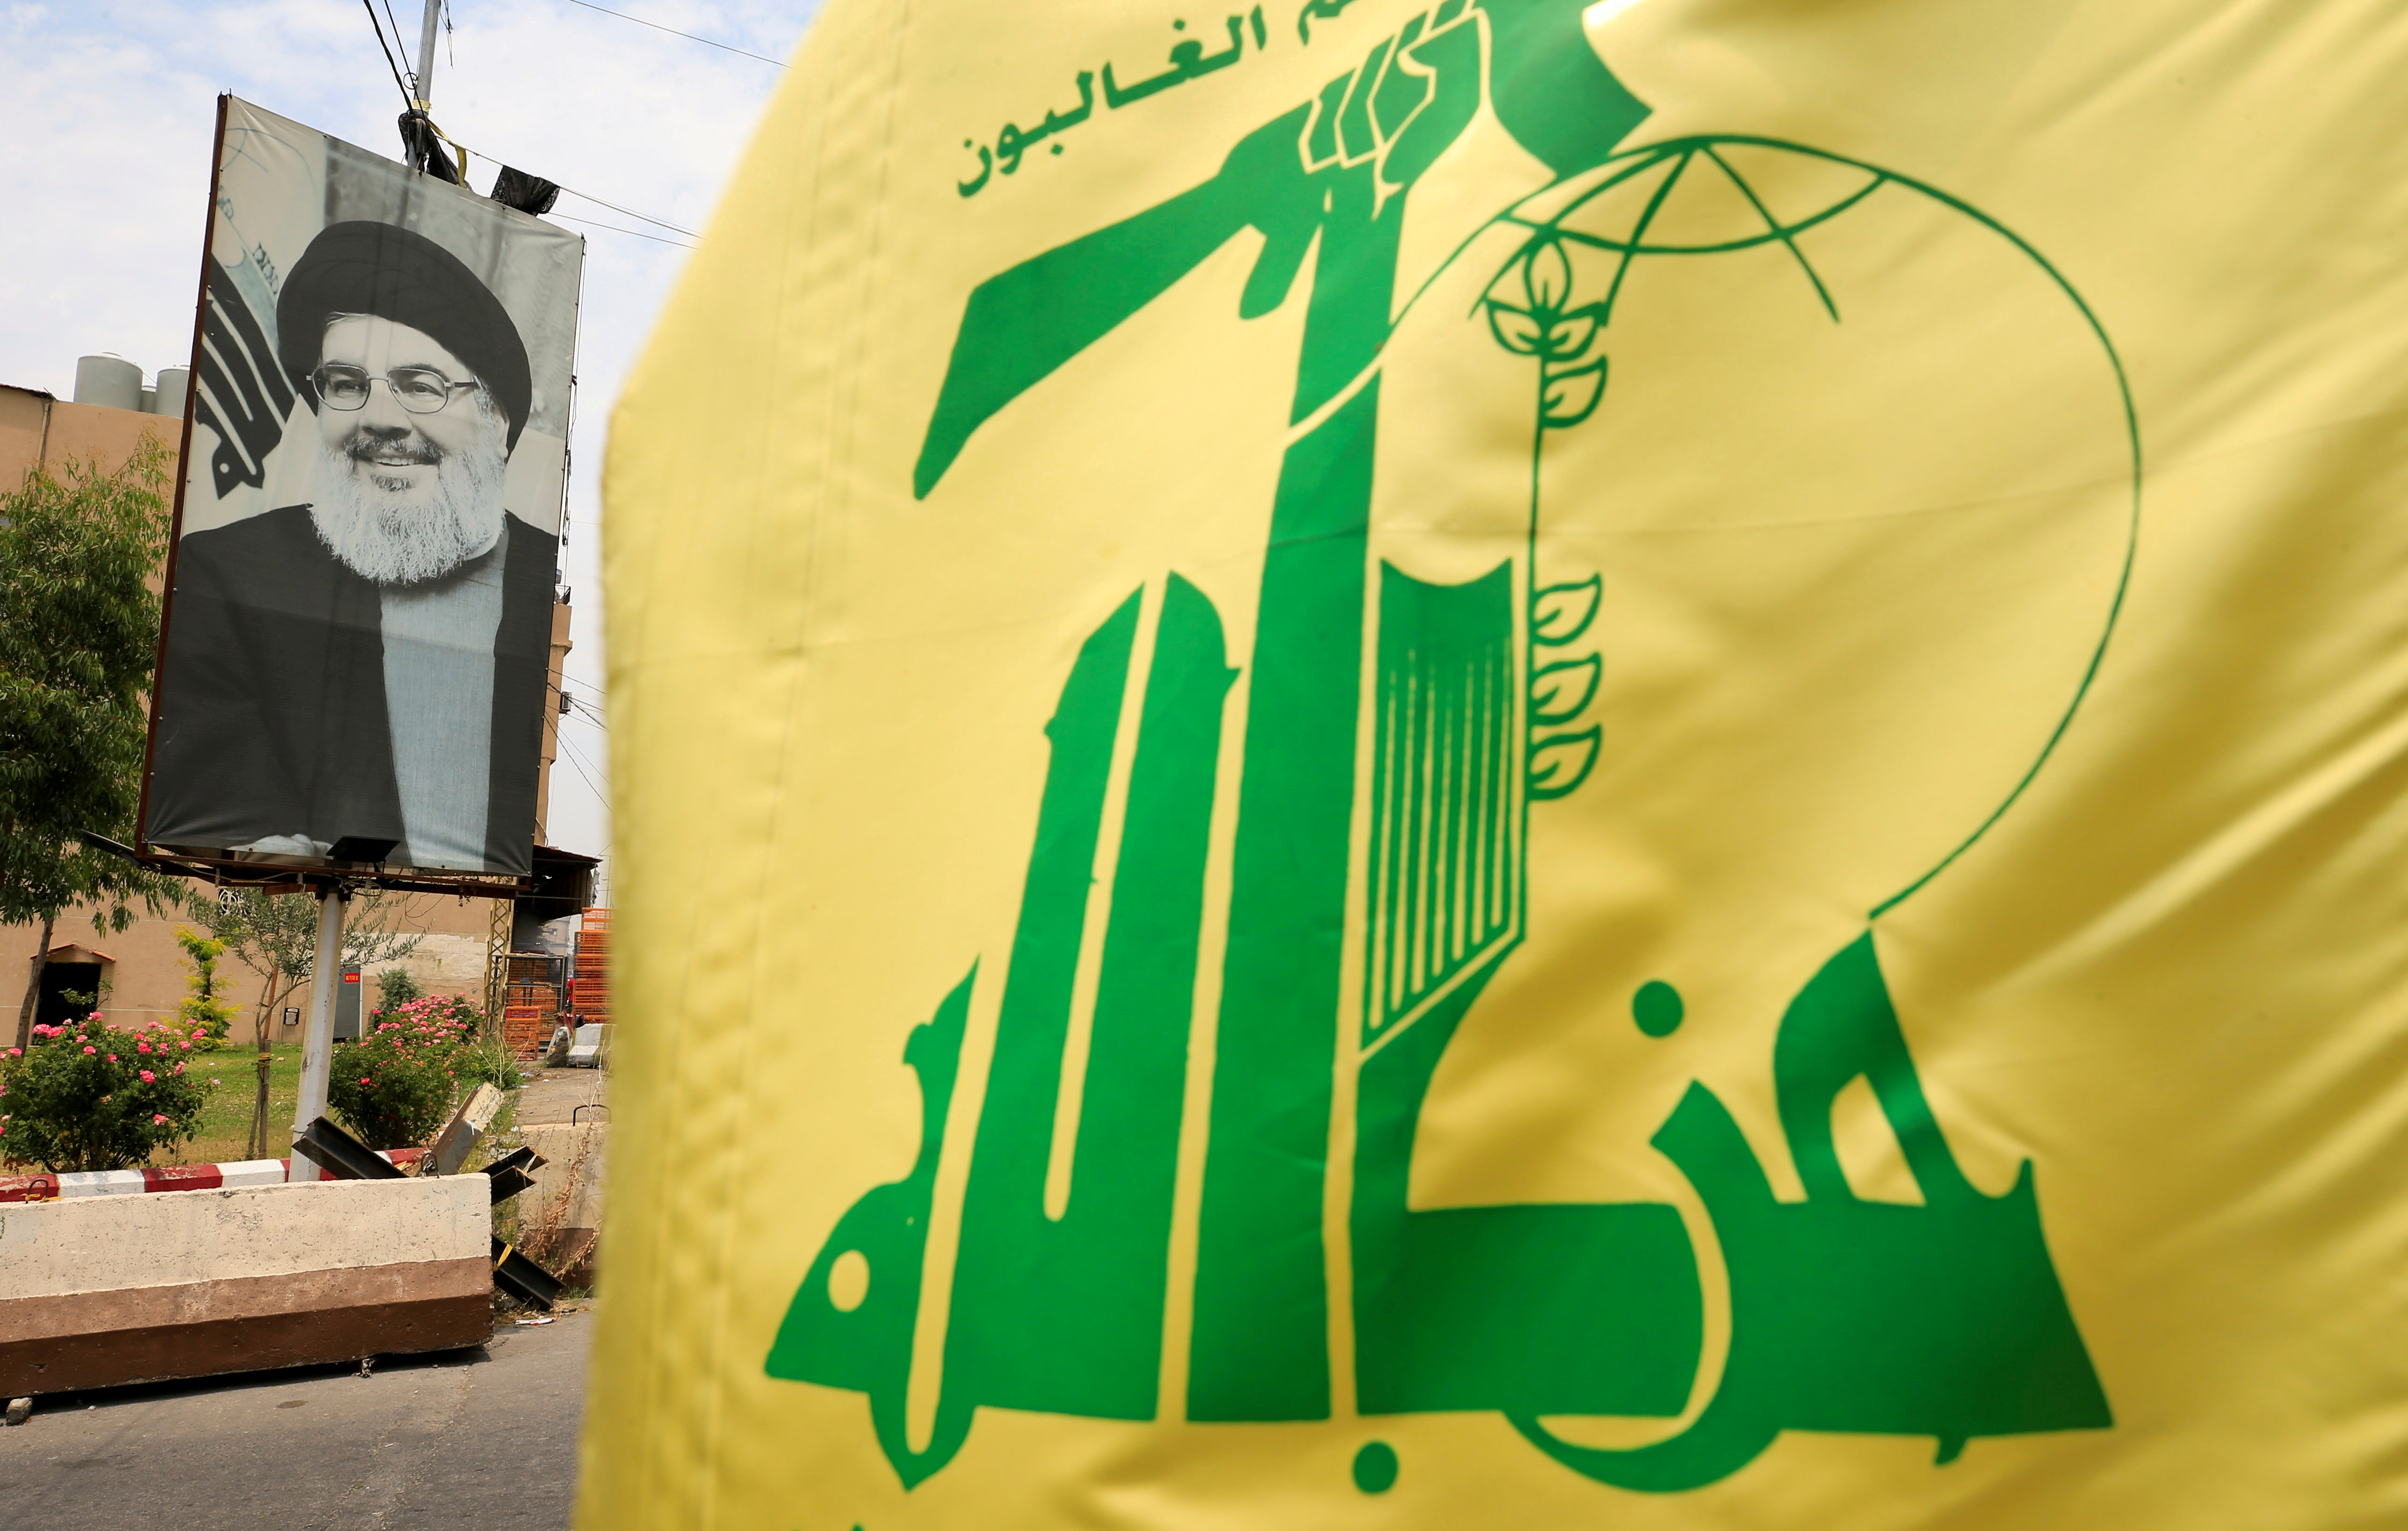 A Hezbollah flag and a poster depicting Lebanon's Hezbollah leader Sayyed Hassan Nasrallah are pictured along a street, near Sidon, Lebanon July 7, 2020. REUTERS/Ali Hashisho/File Photo